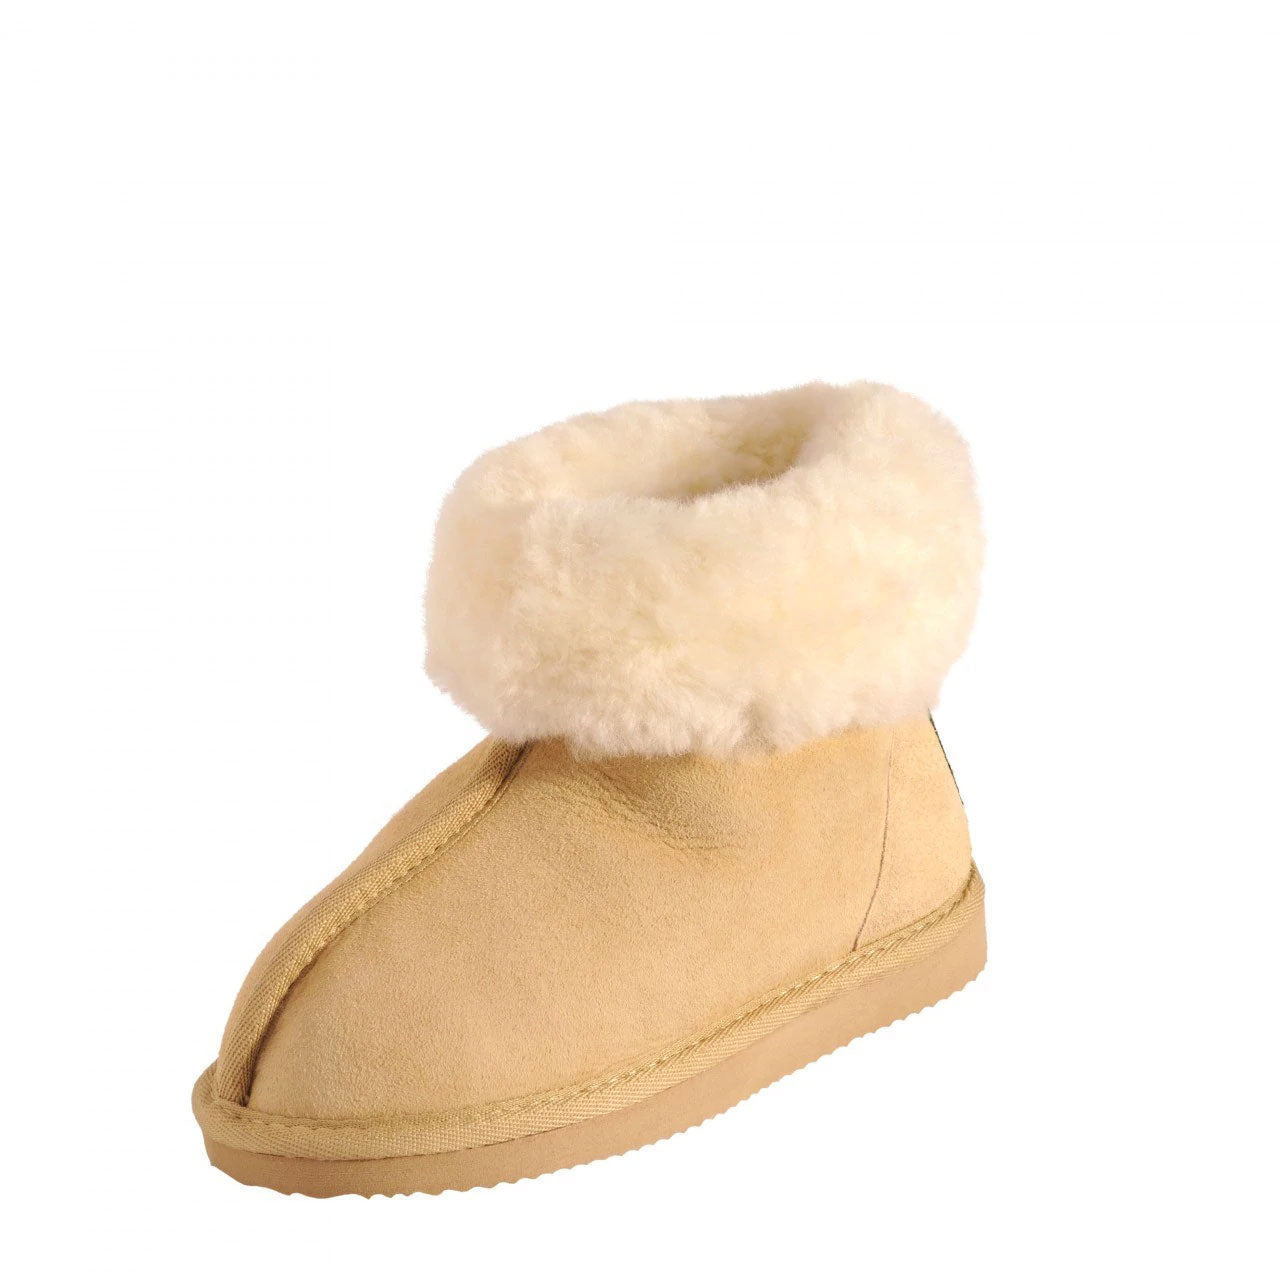 Mi Woollies Cheeseman Ugg Boot